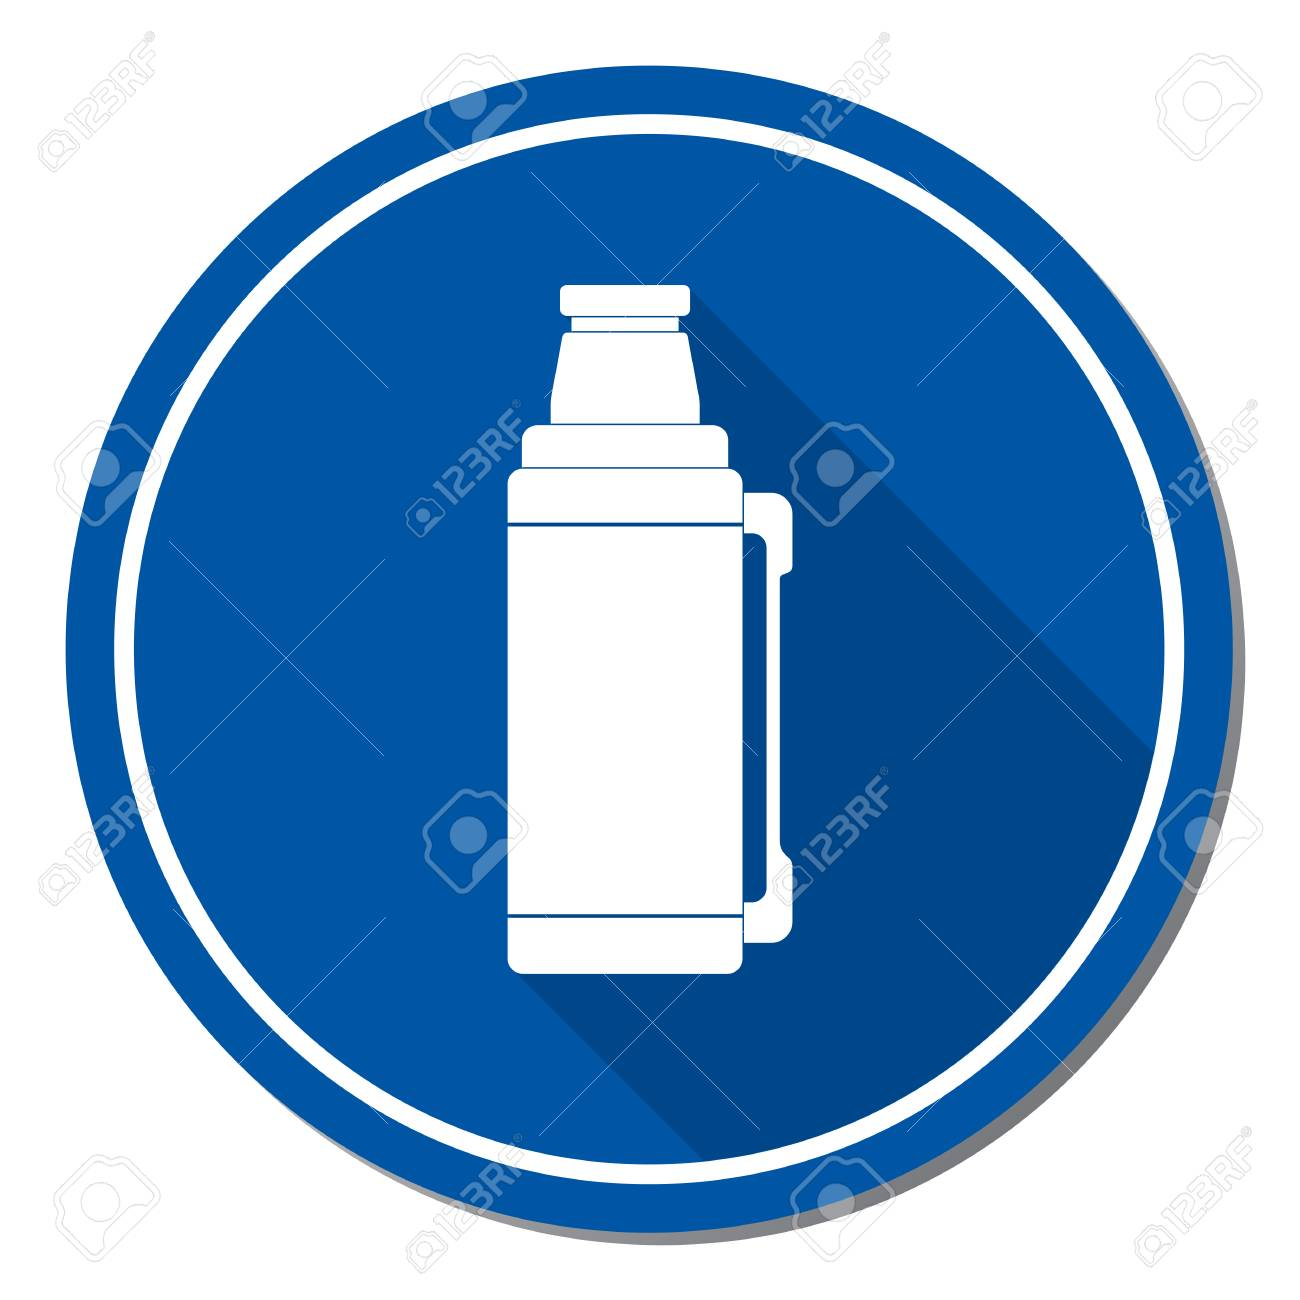 Camping Water Container >> Hot Water Container Icon Camping And Hiking Equipment Vector